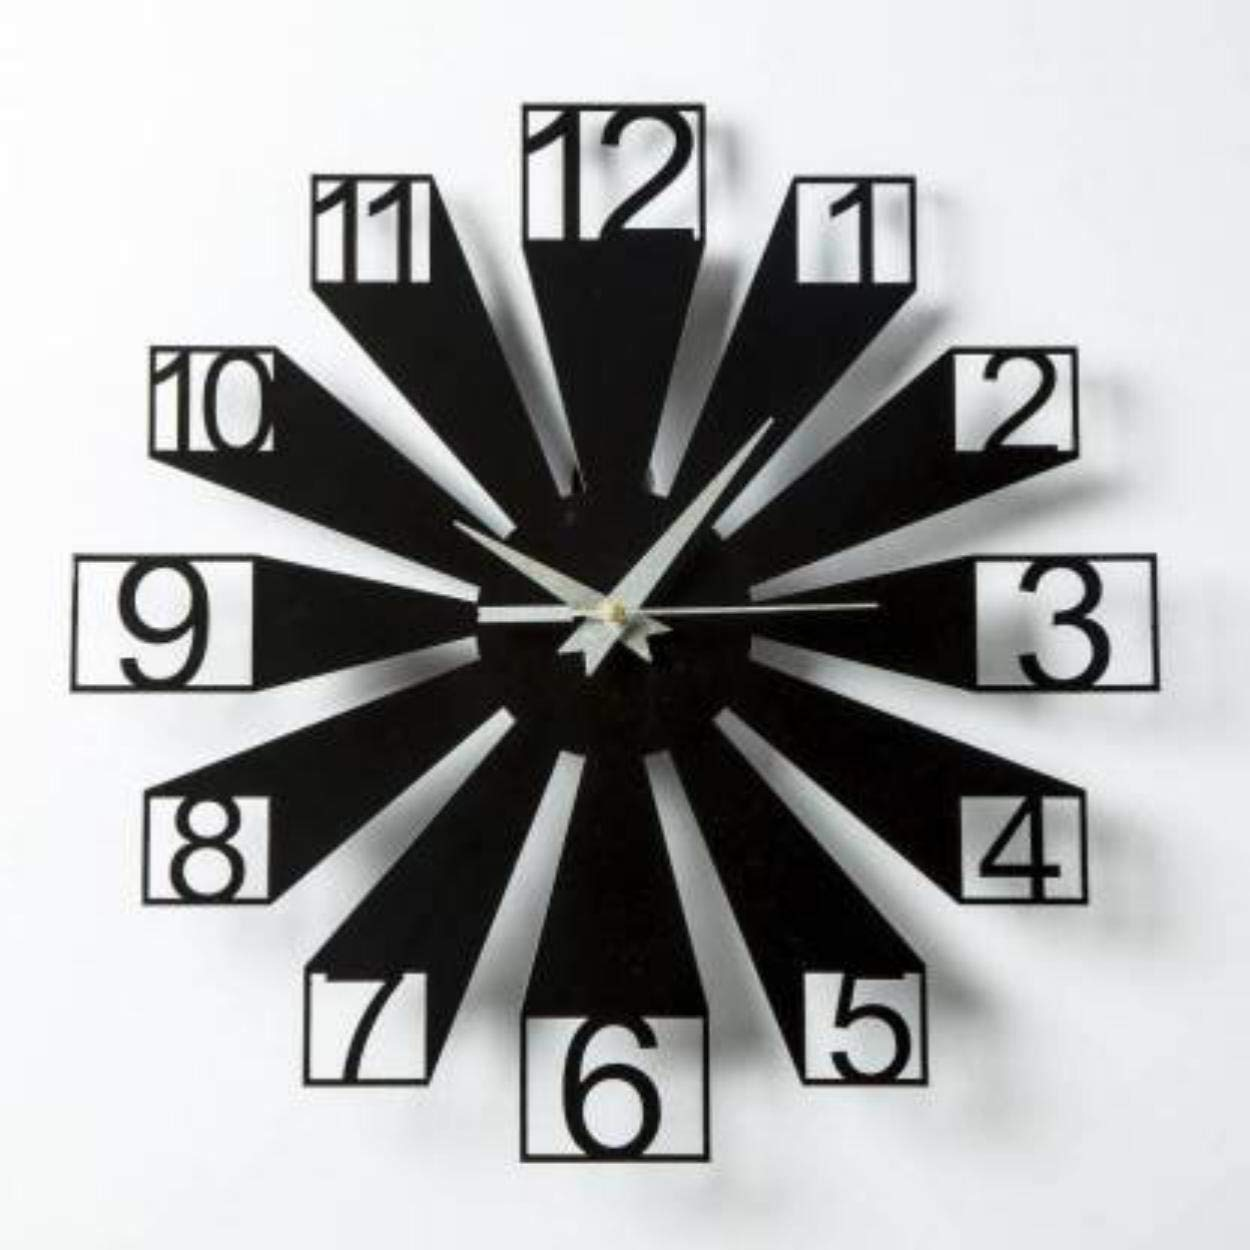 Generic,Gudki Analog Wall Clock for Home for Living Room(12 X 12 Inches)